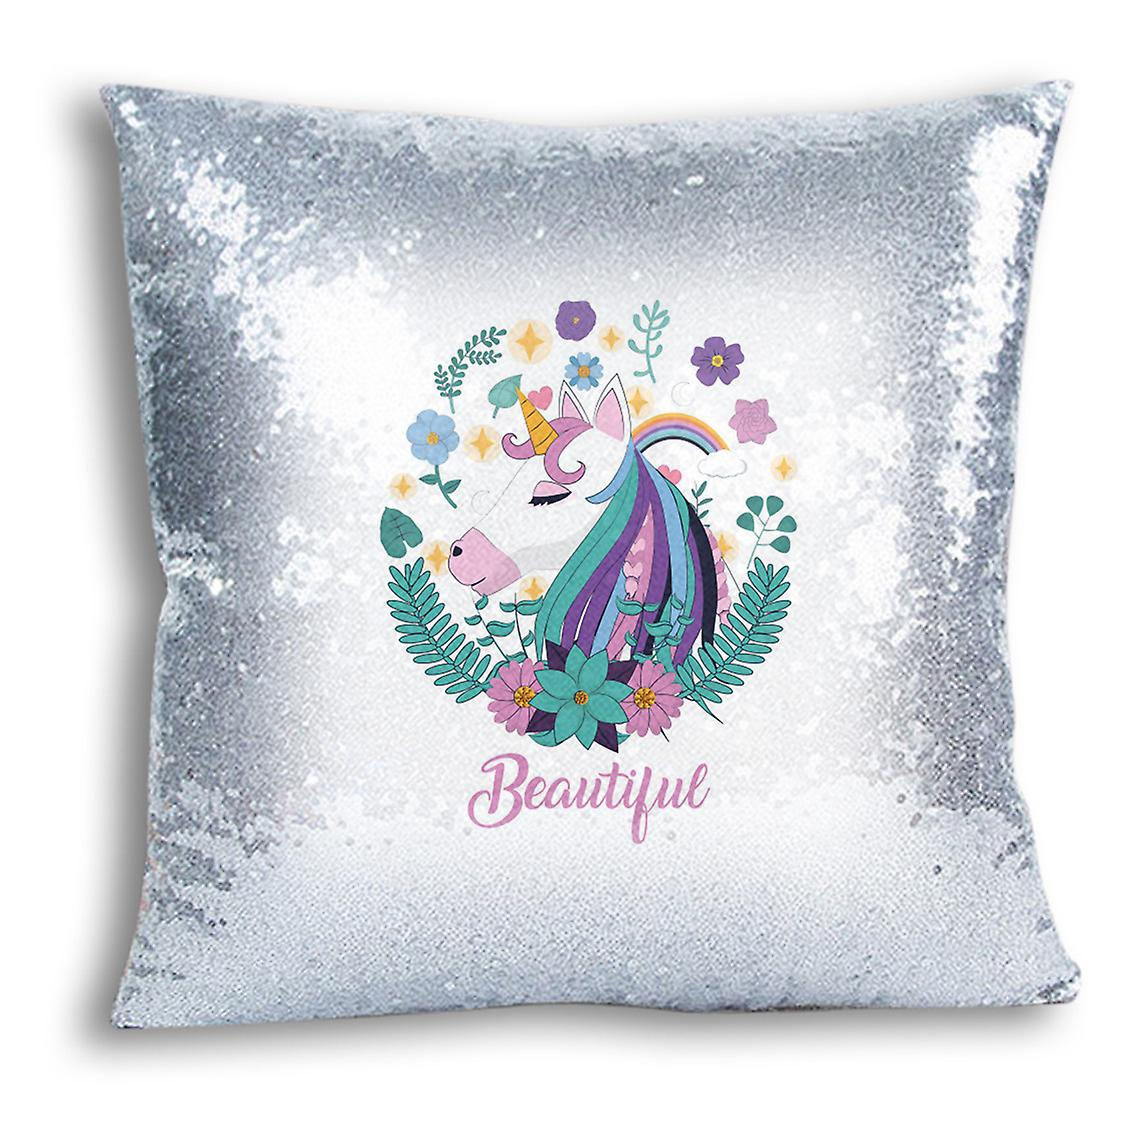 13 tronixsUnicorn Printed Design Silver Sequin Home I Decor CushionPillow For Cover qUpLSGzVjM